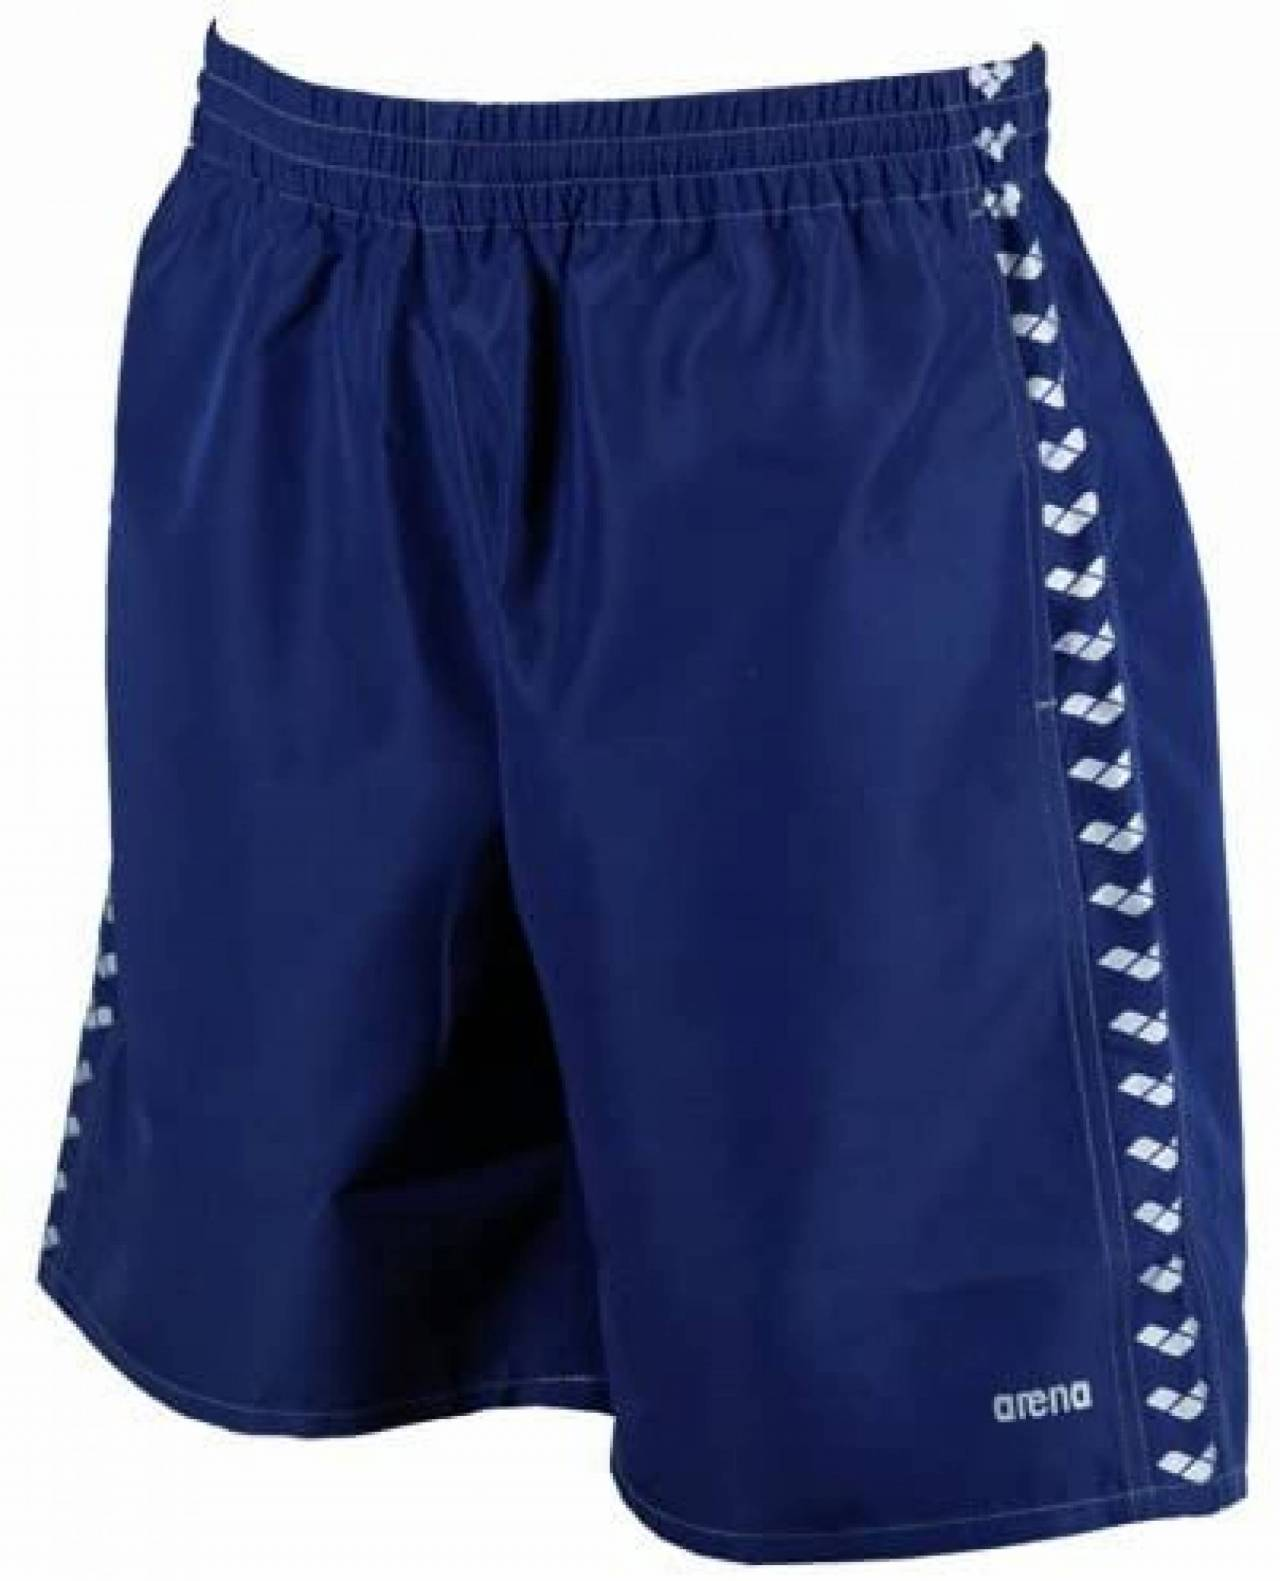 arena Kinder Shorts Garcya jr